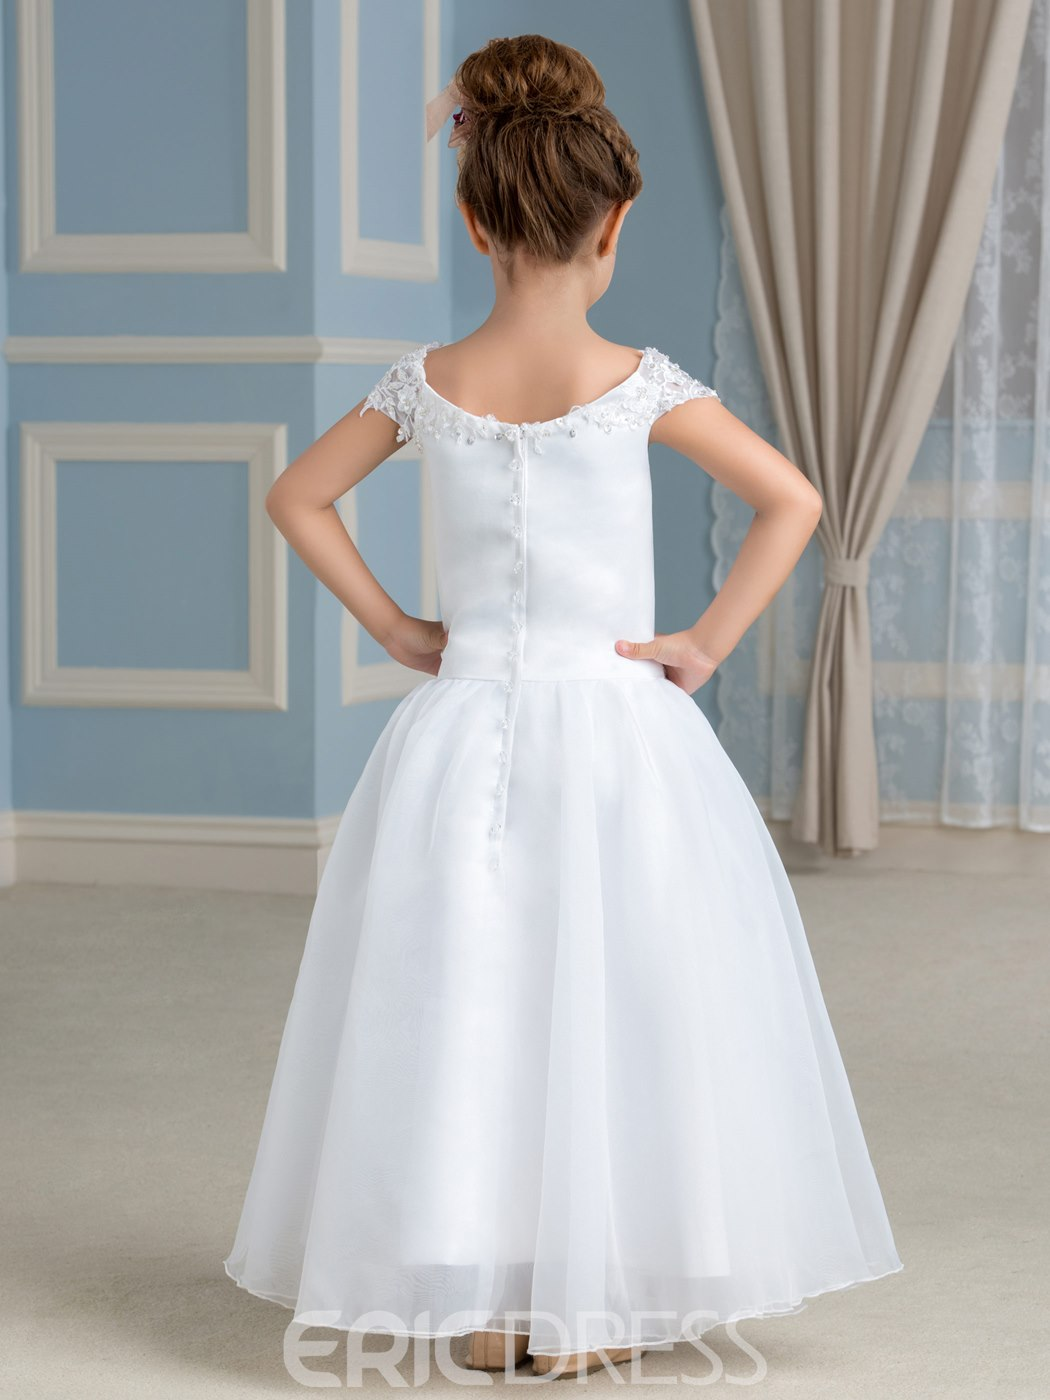 Ericdress Charming Off The Shoulder A Line Flower Girl Dress